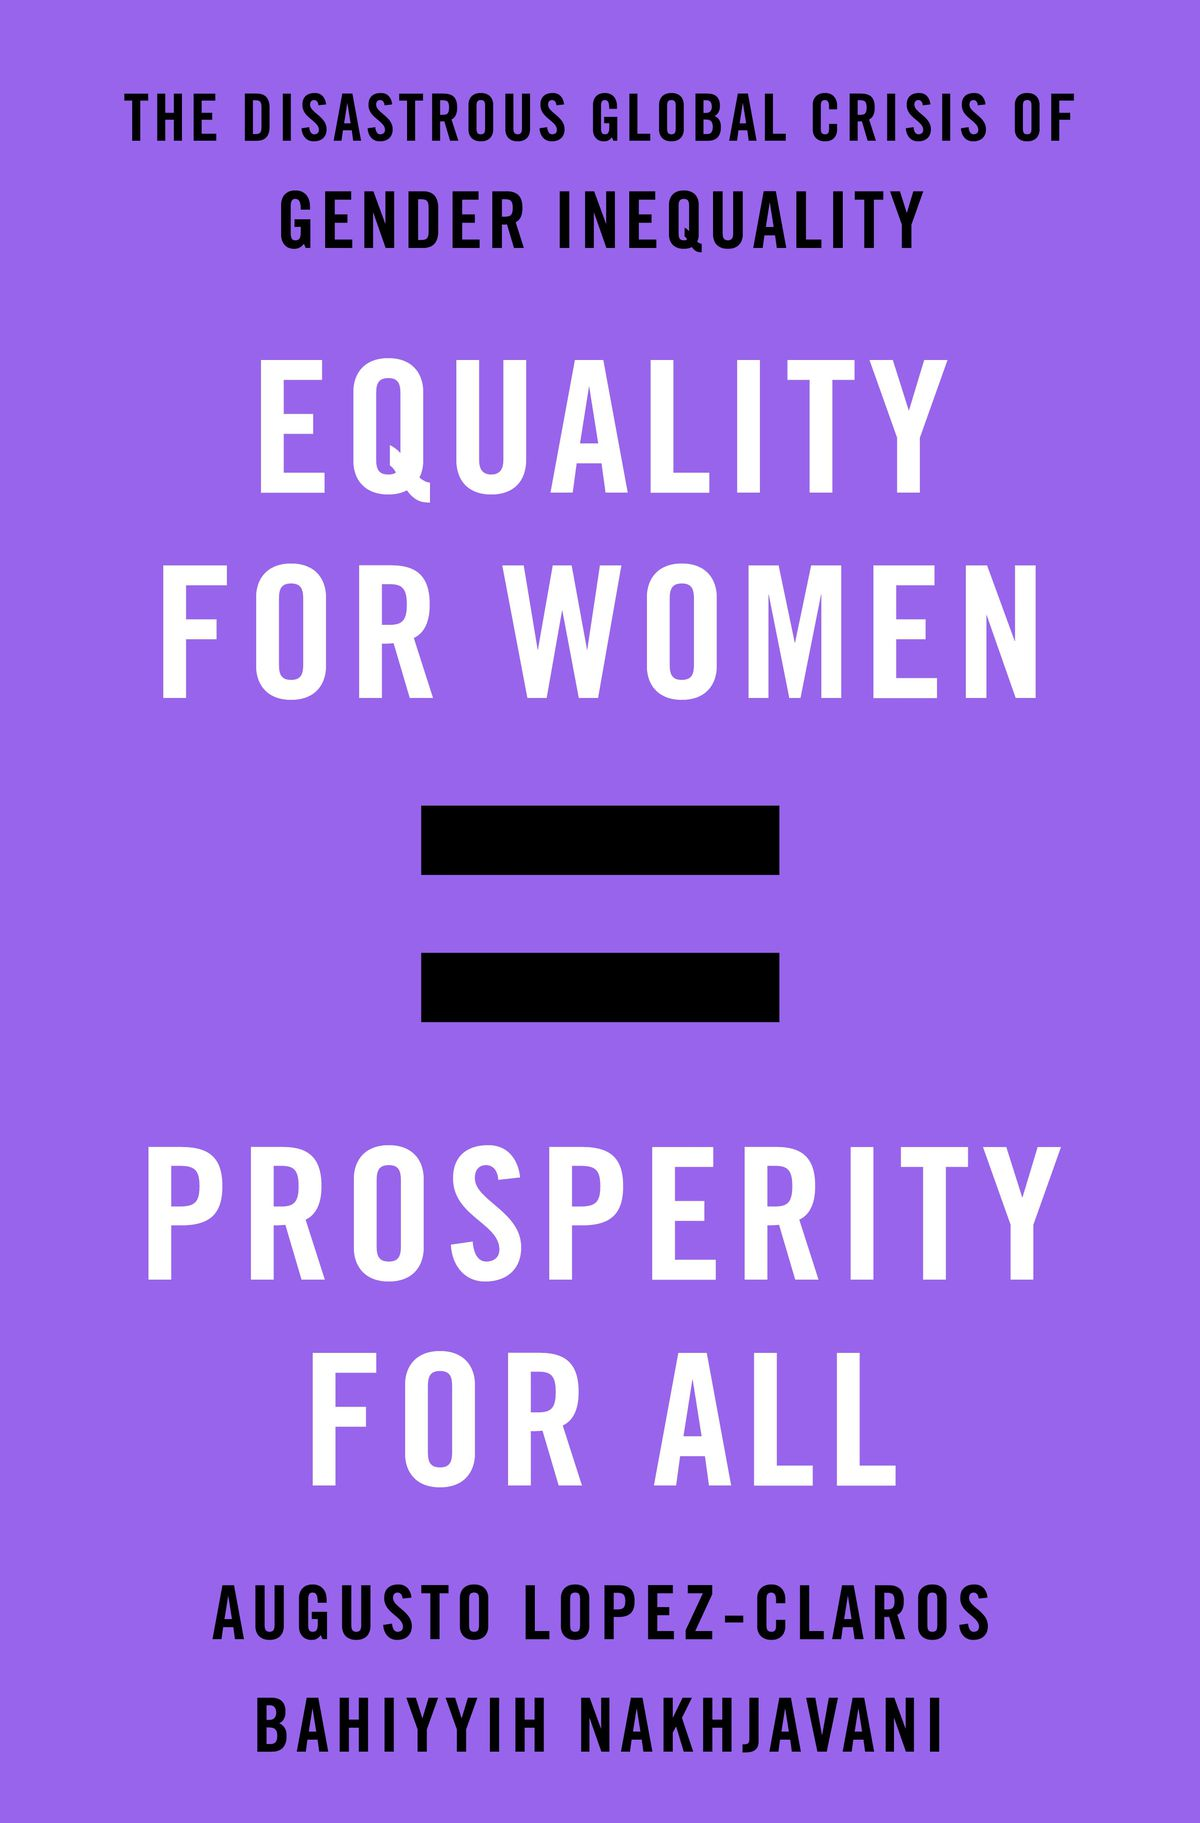 what are the effects of gender inequality on development